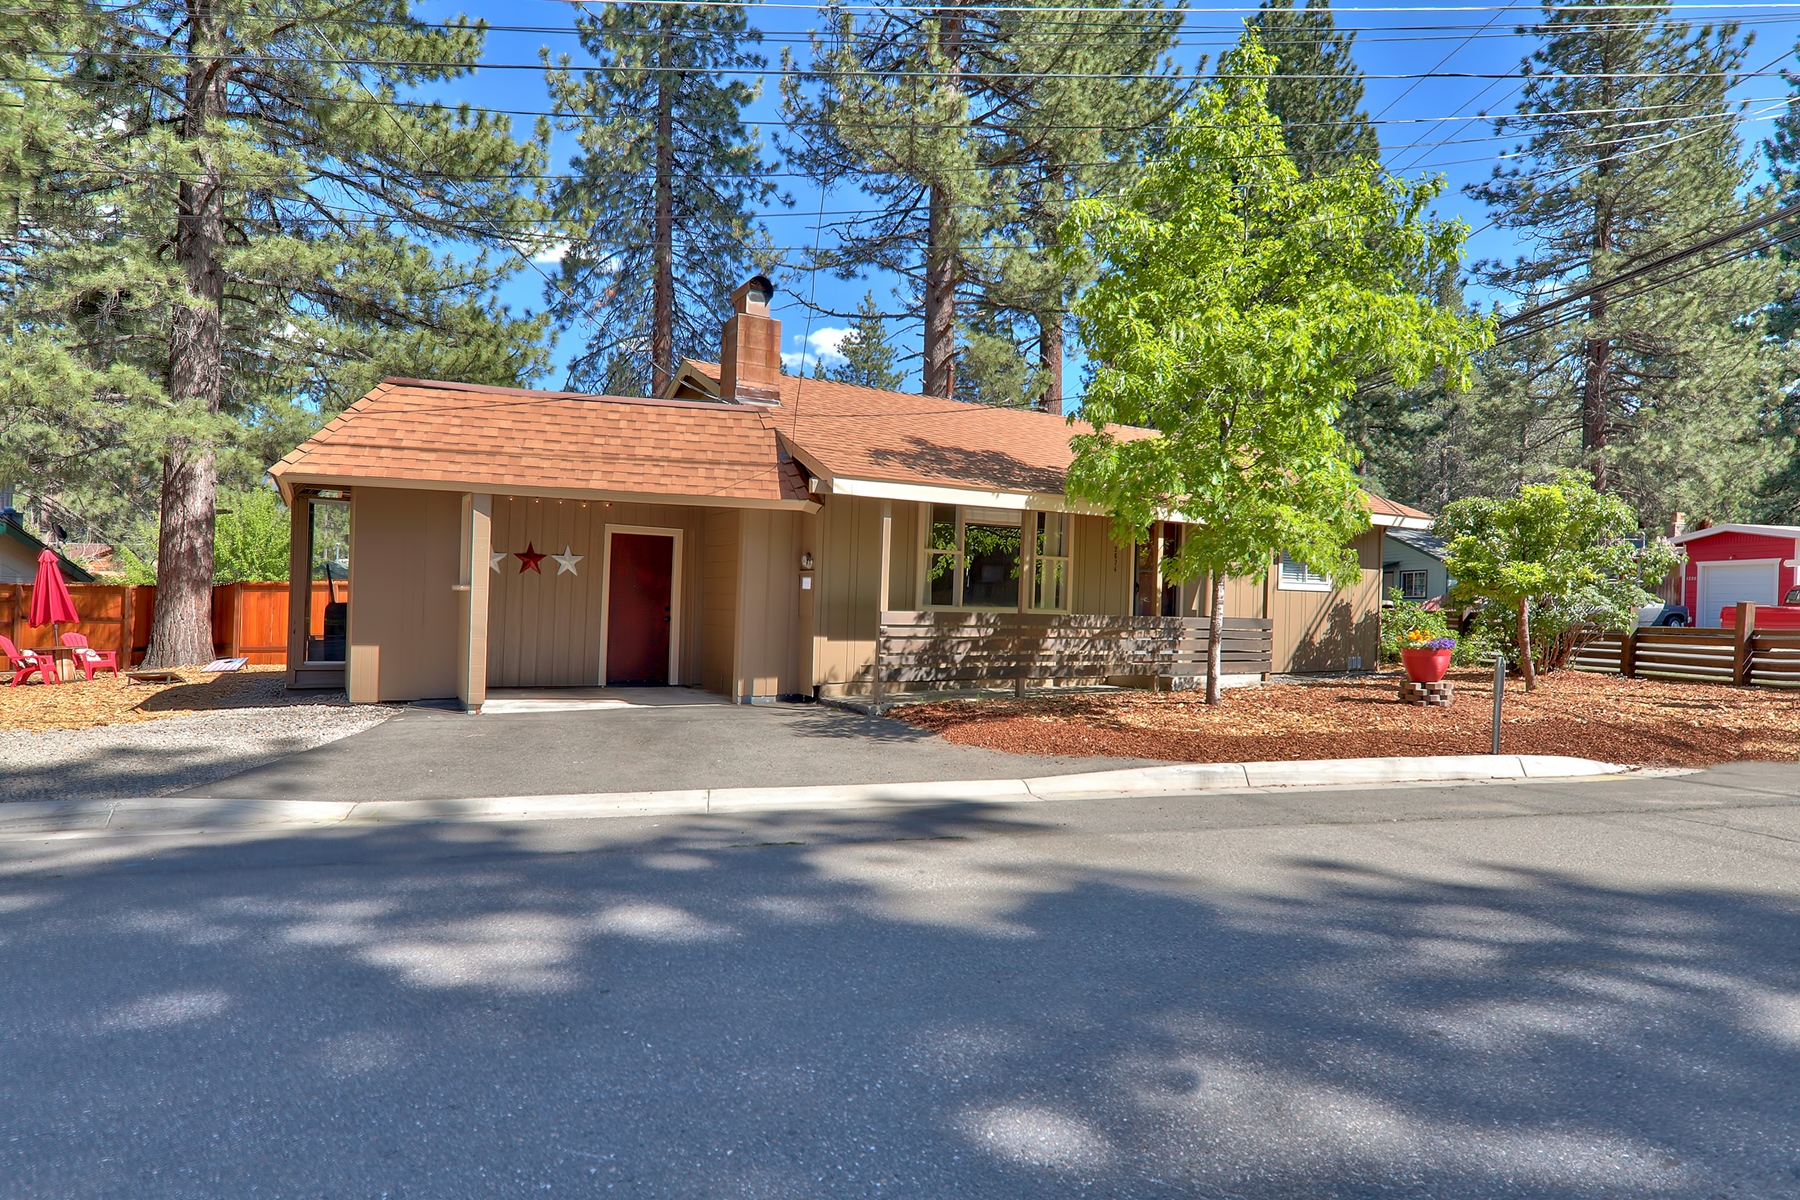 Single Family Homes for Active at 2674 Rose Ave, South Lake Tahoe, CA 96150 2674 Rose Avenue South Lake Tahoe, California 96150 United States